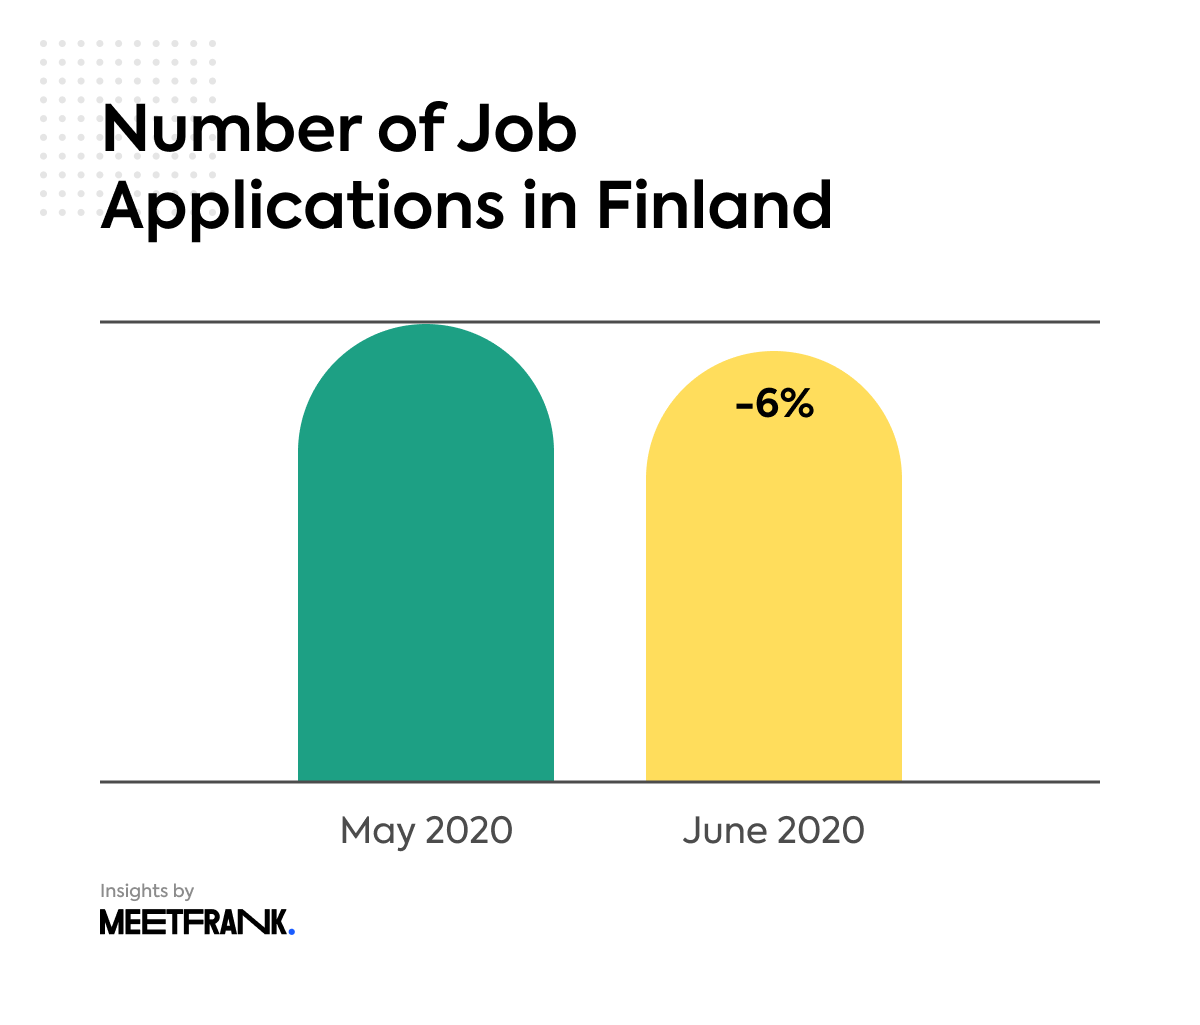 the number of job applications in Finland